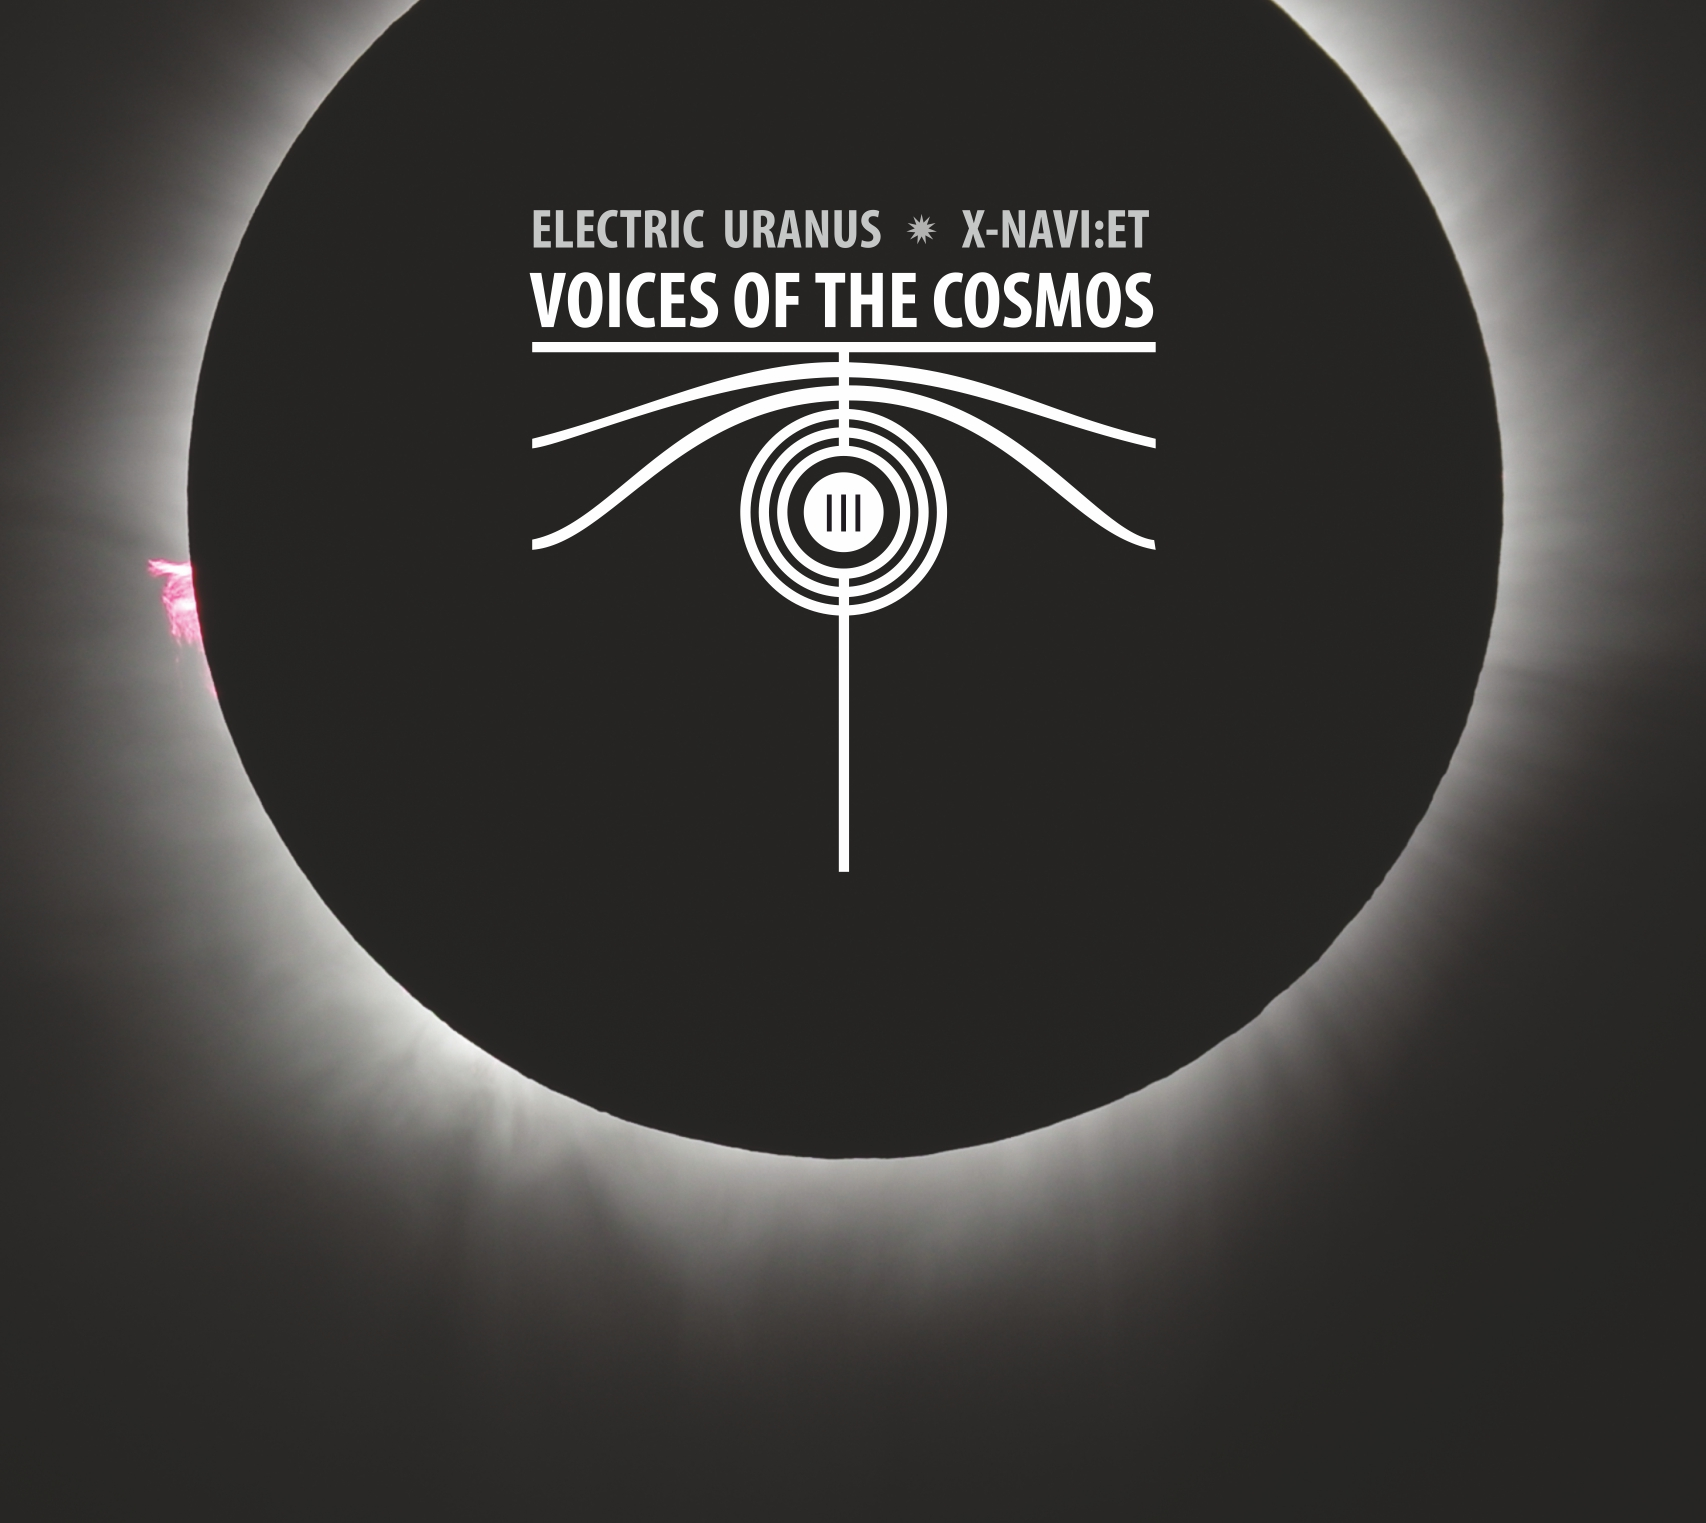 Voices of the Cosmos III - nowy album duetu X-Navi:Et & Electric Uranus